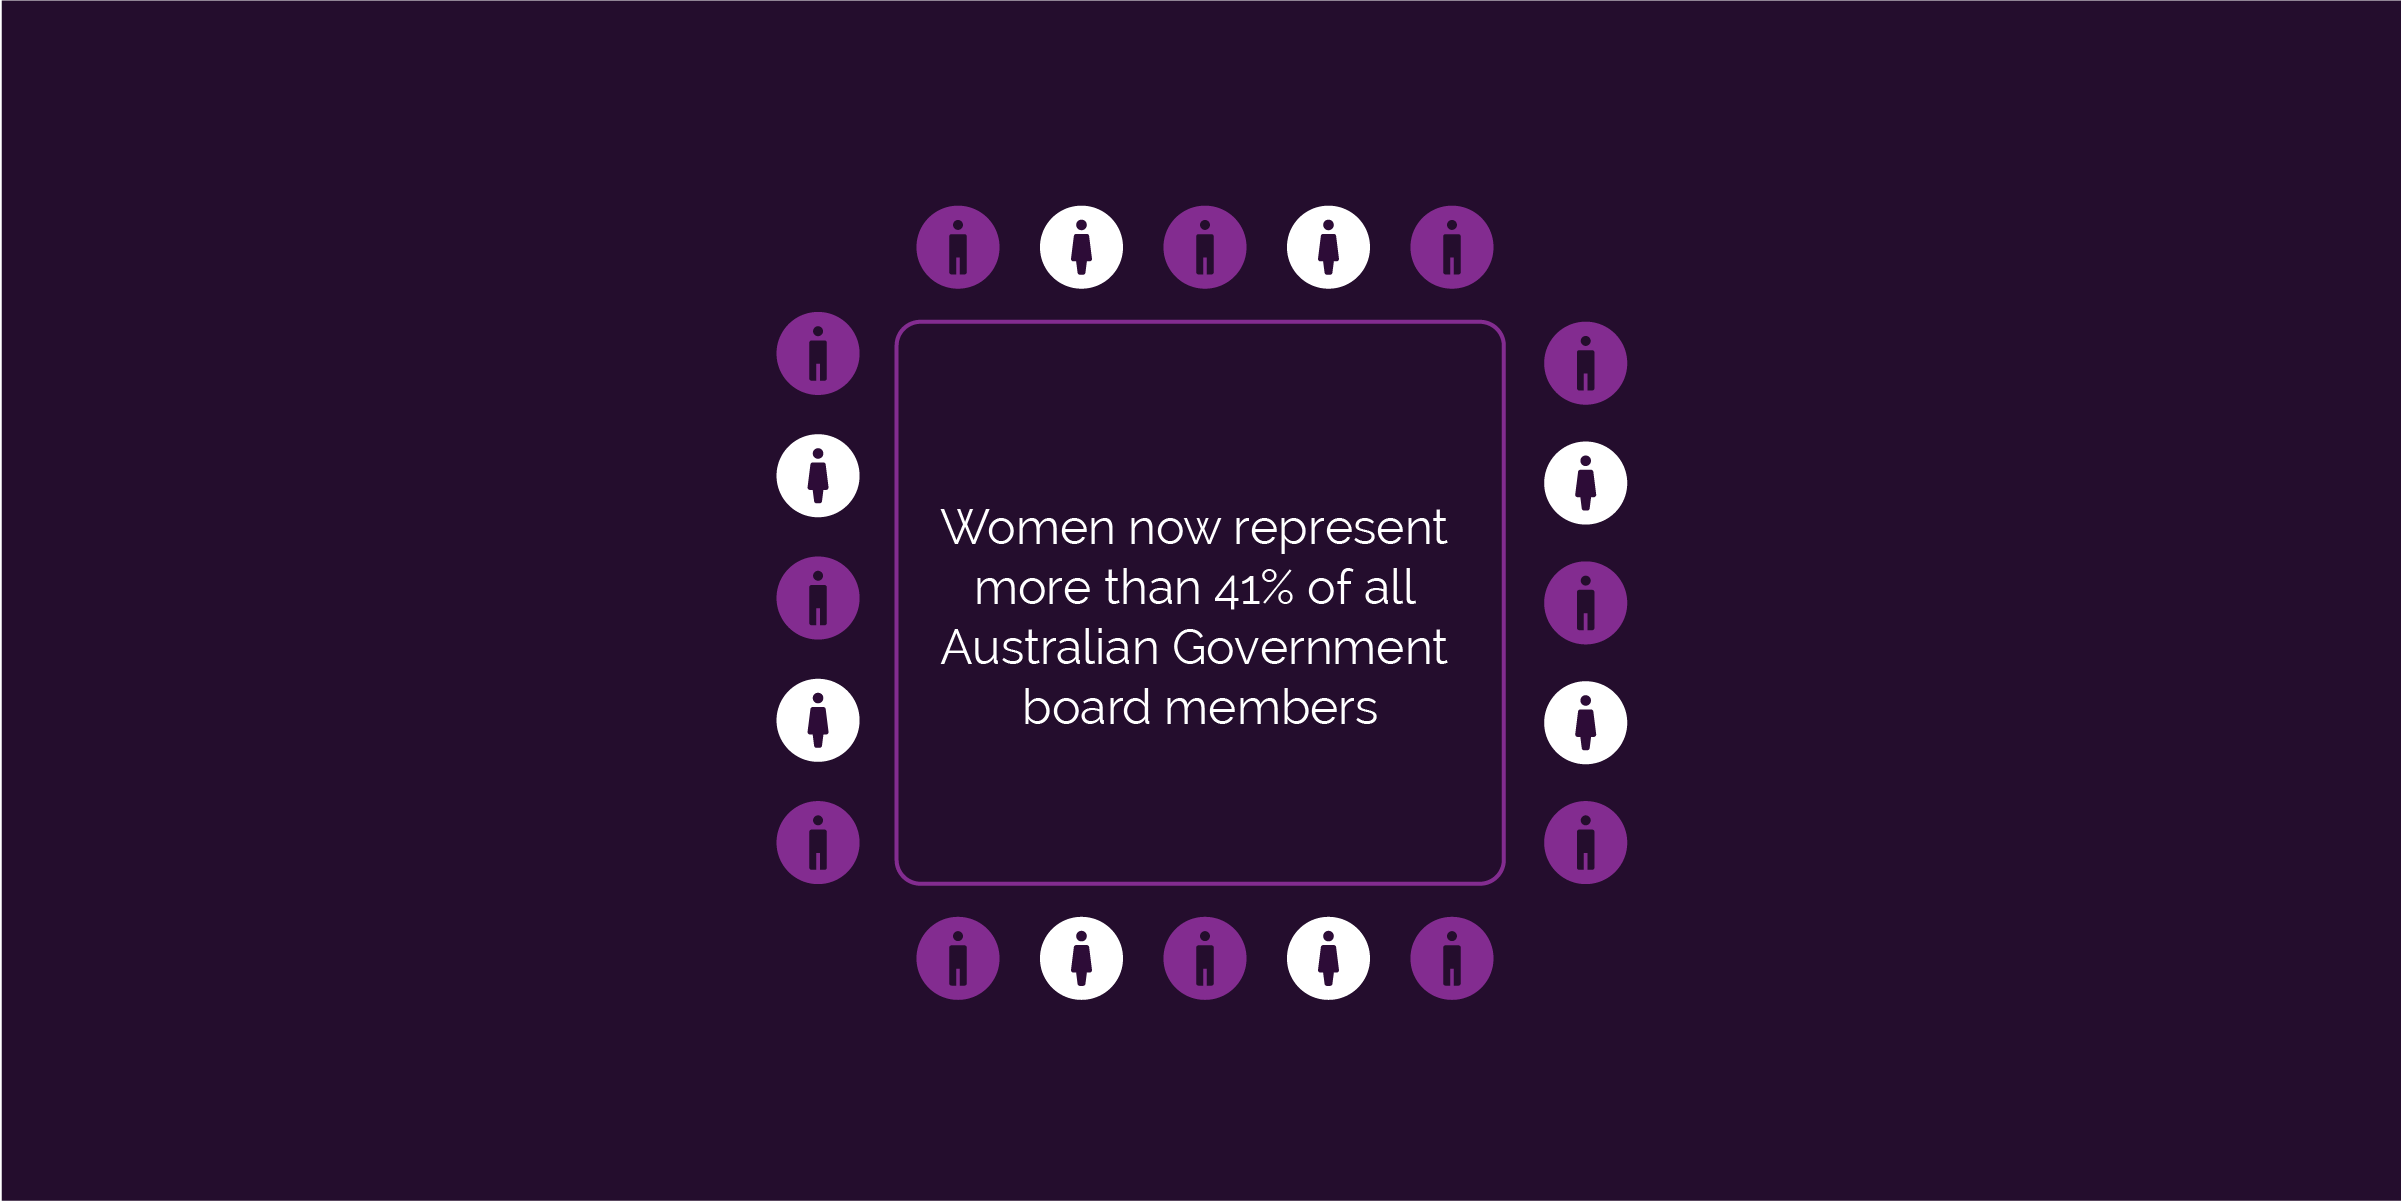 Women now represent more than 41% of all Australian Government board members.